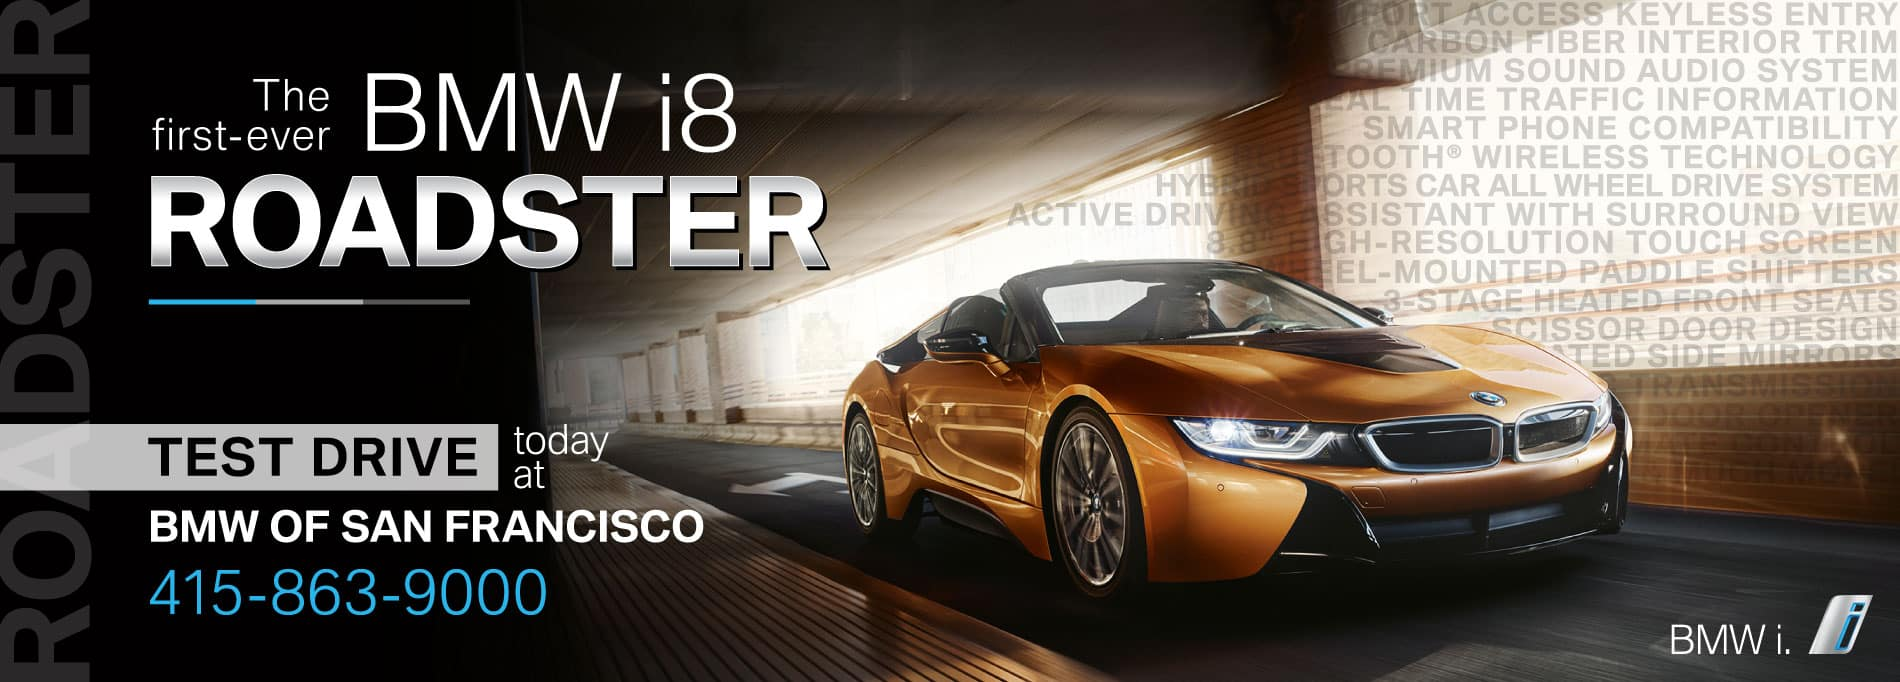 2019 Bmw I8 Roadster Bmw Of San Francisco